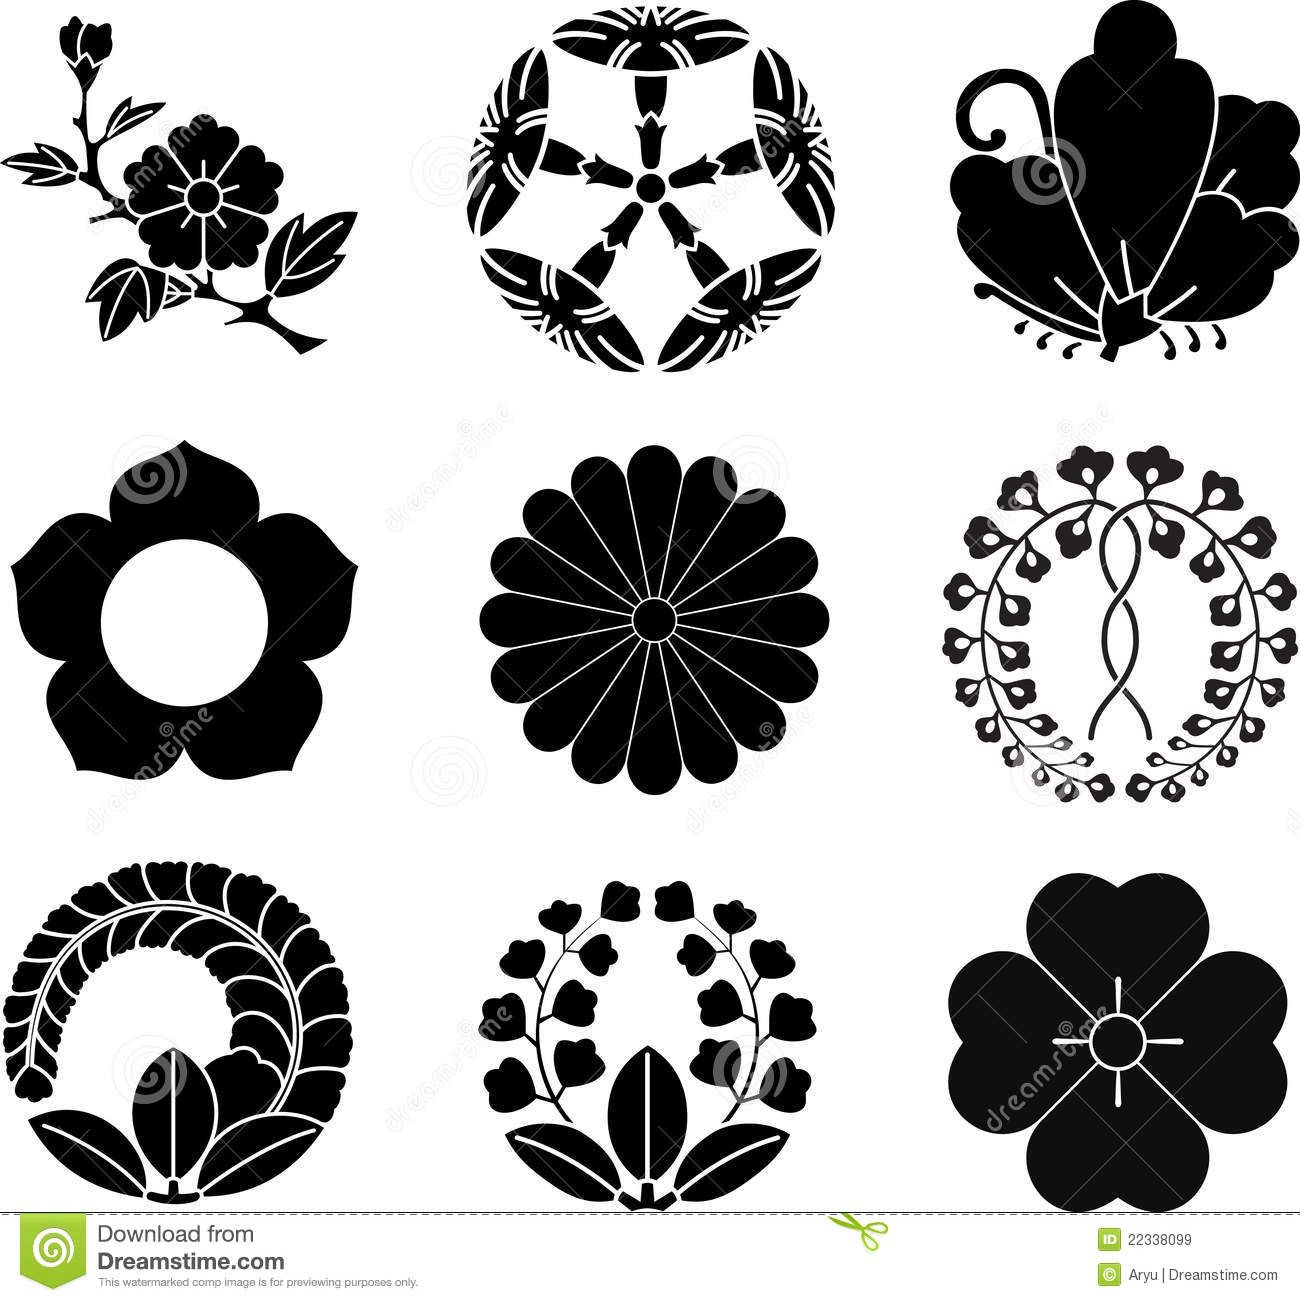 Httpthumbsdreamstimezjapanese family crests 22338099g bildresultat fr snow family crest of japan biocorpaavc